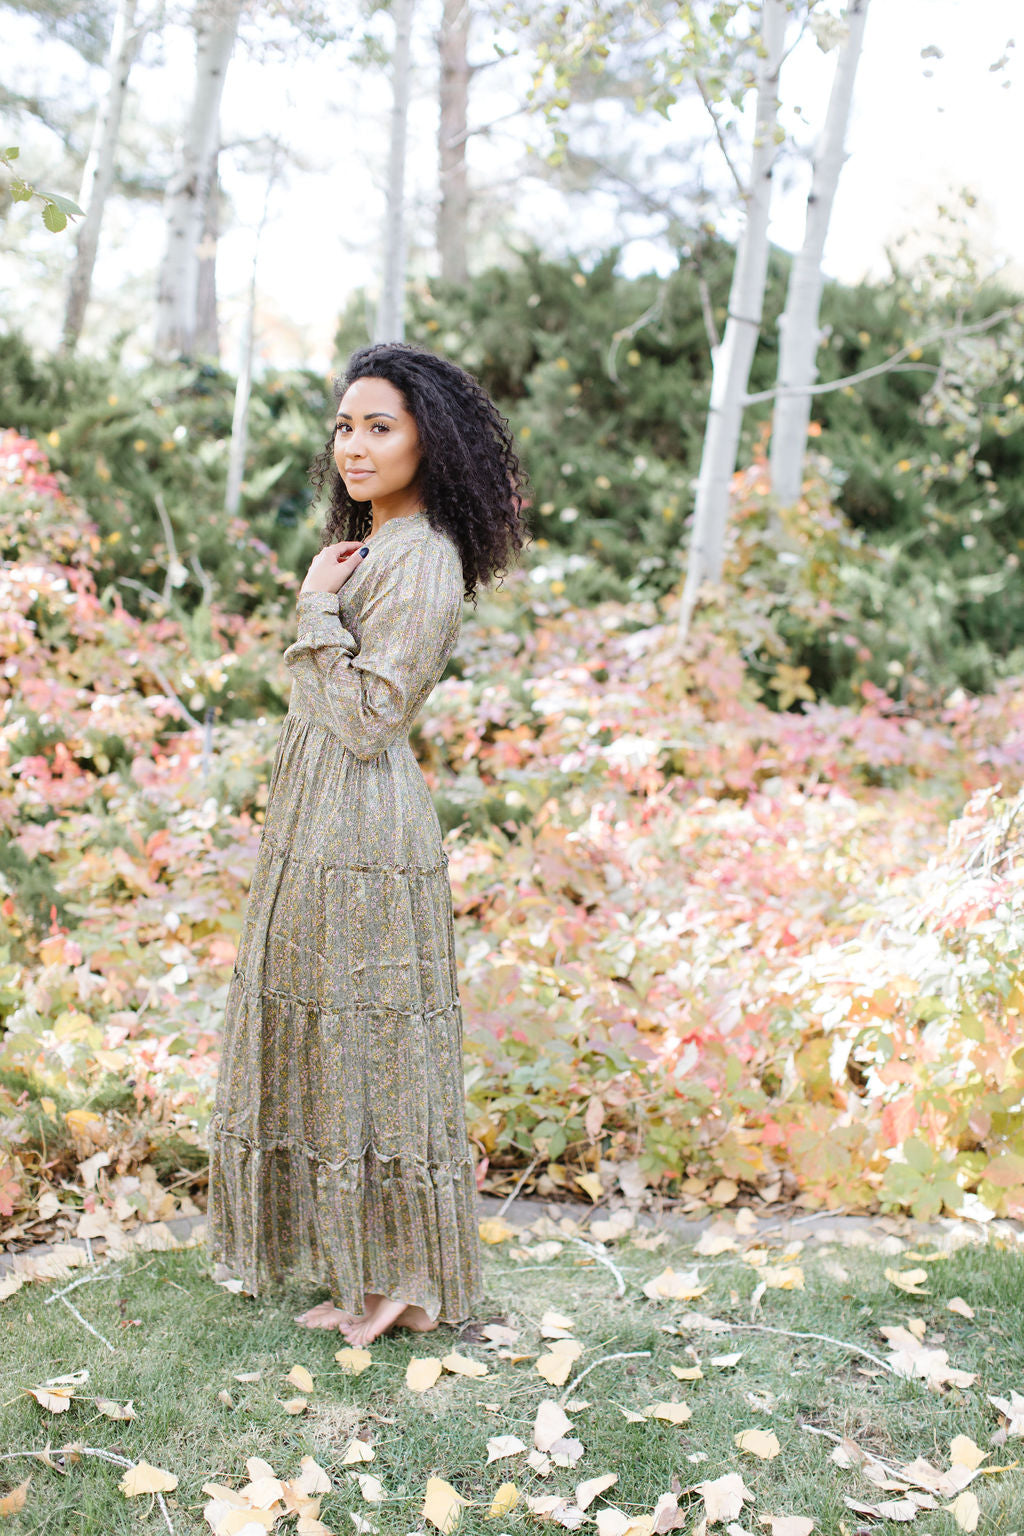 The Olive Paisley Dress